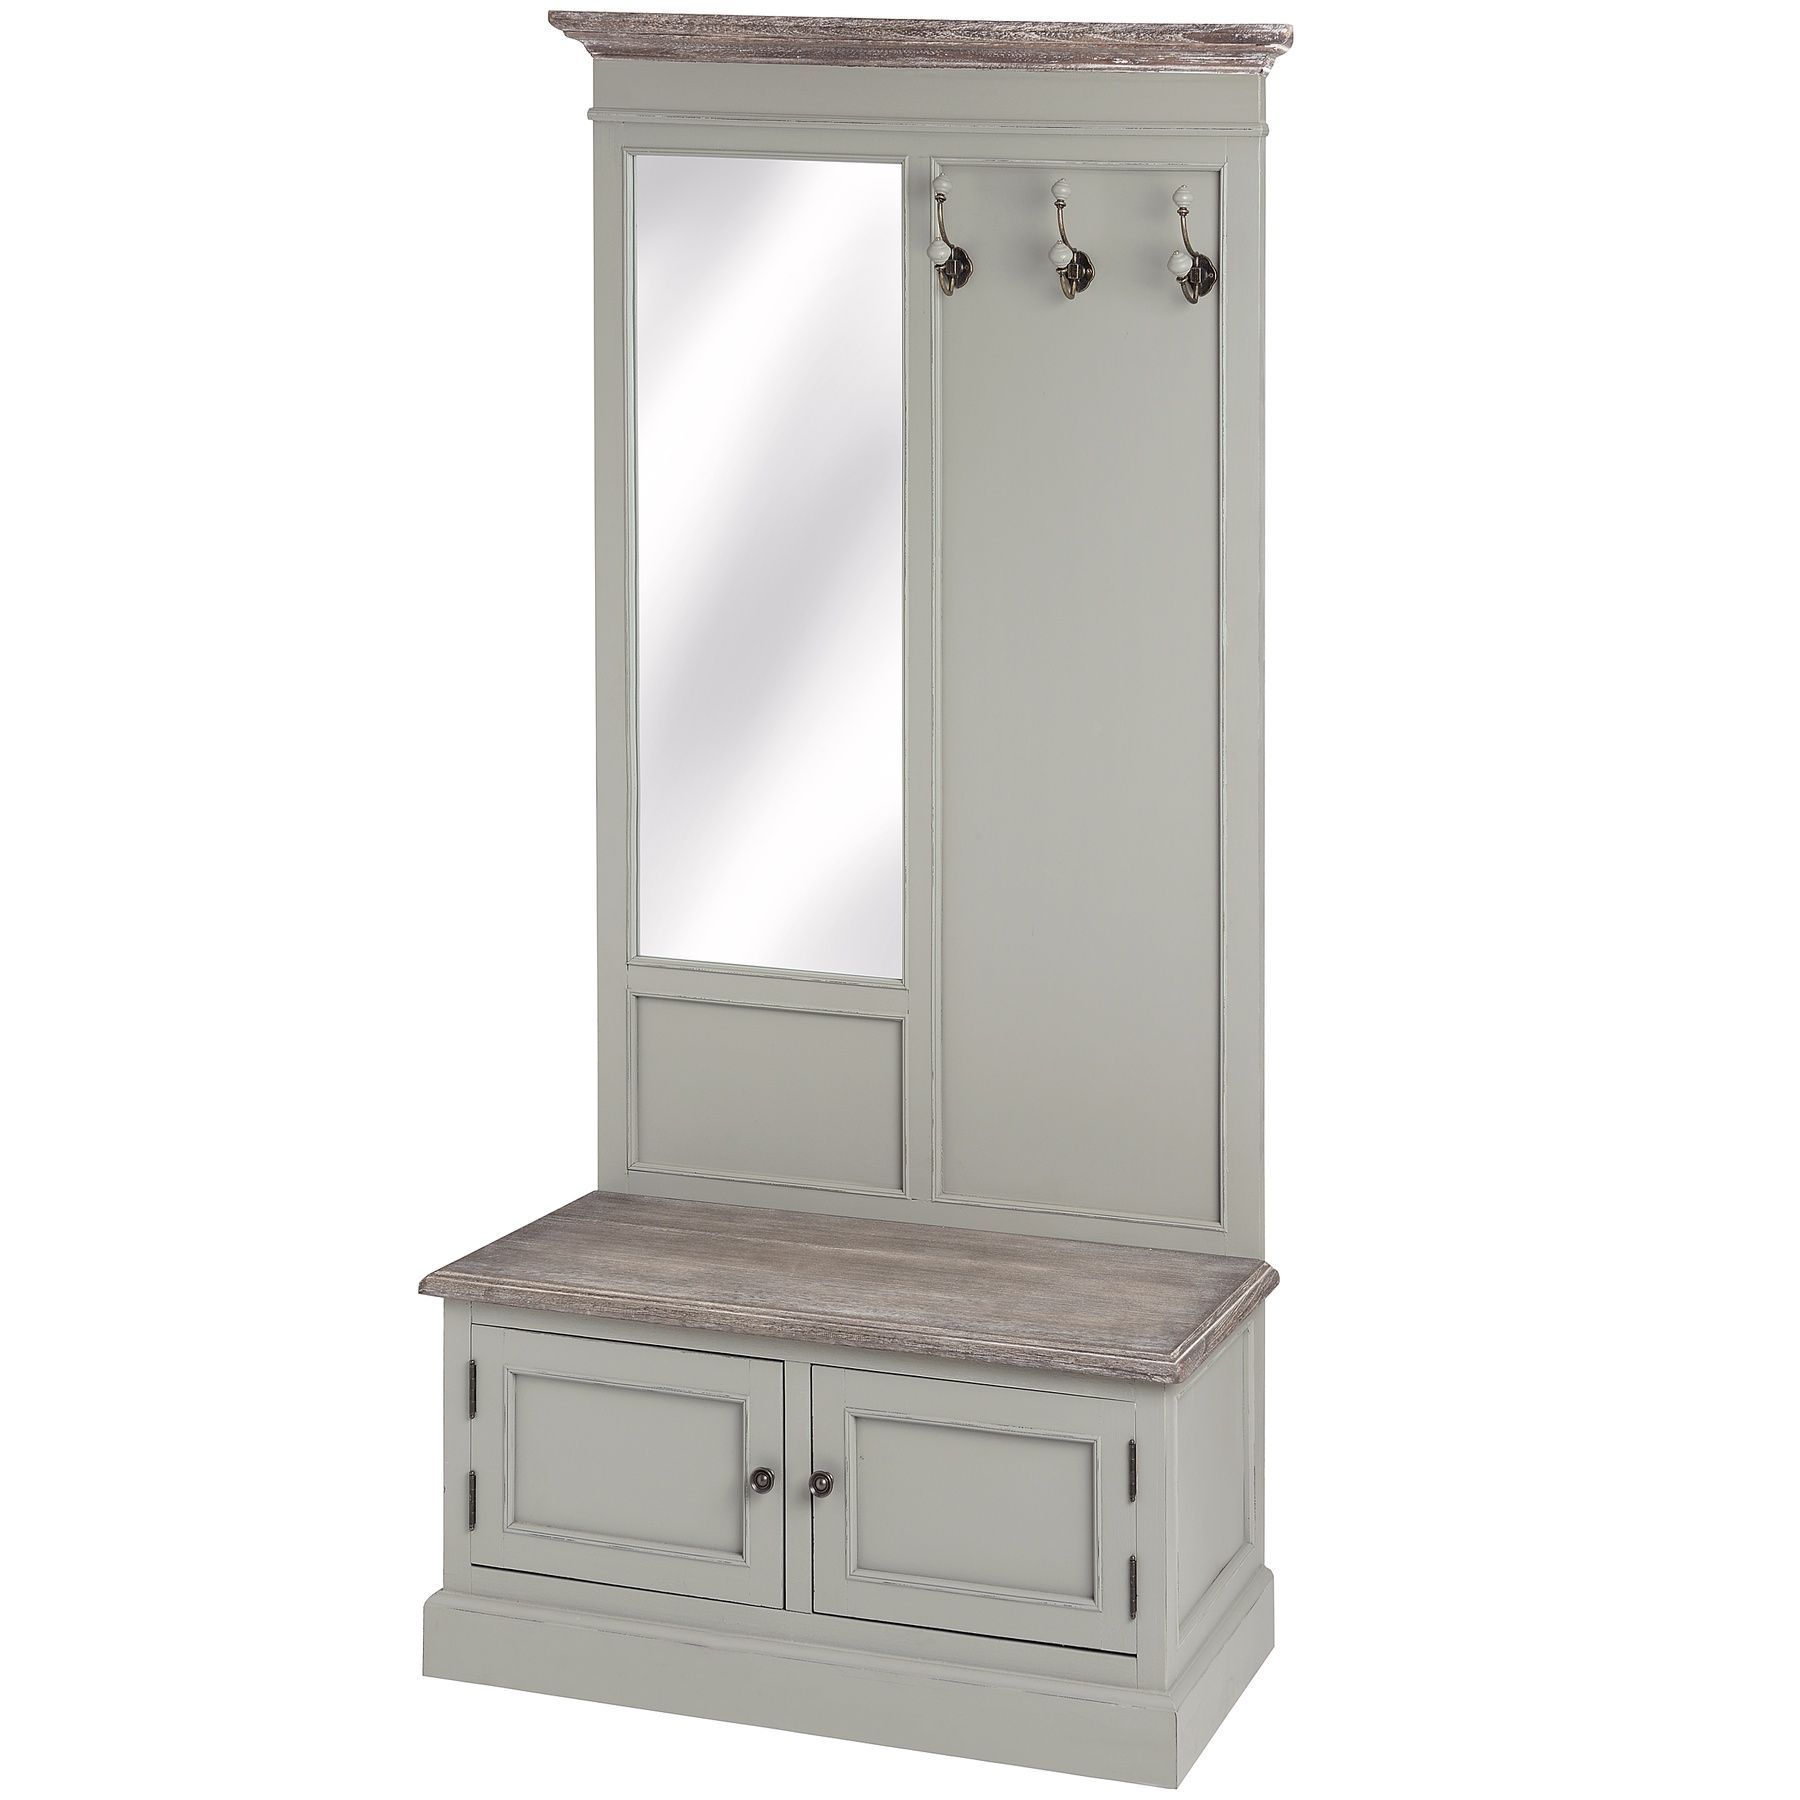 Hall Cupboards Furniture lyon grey hall cabinet with mirror & hooks from hill interiors